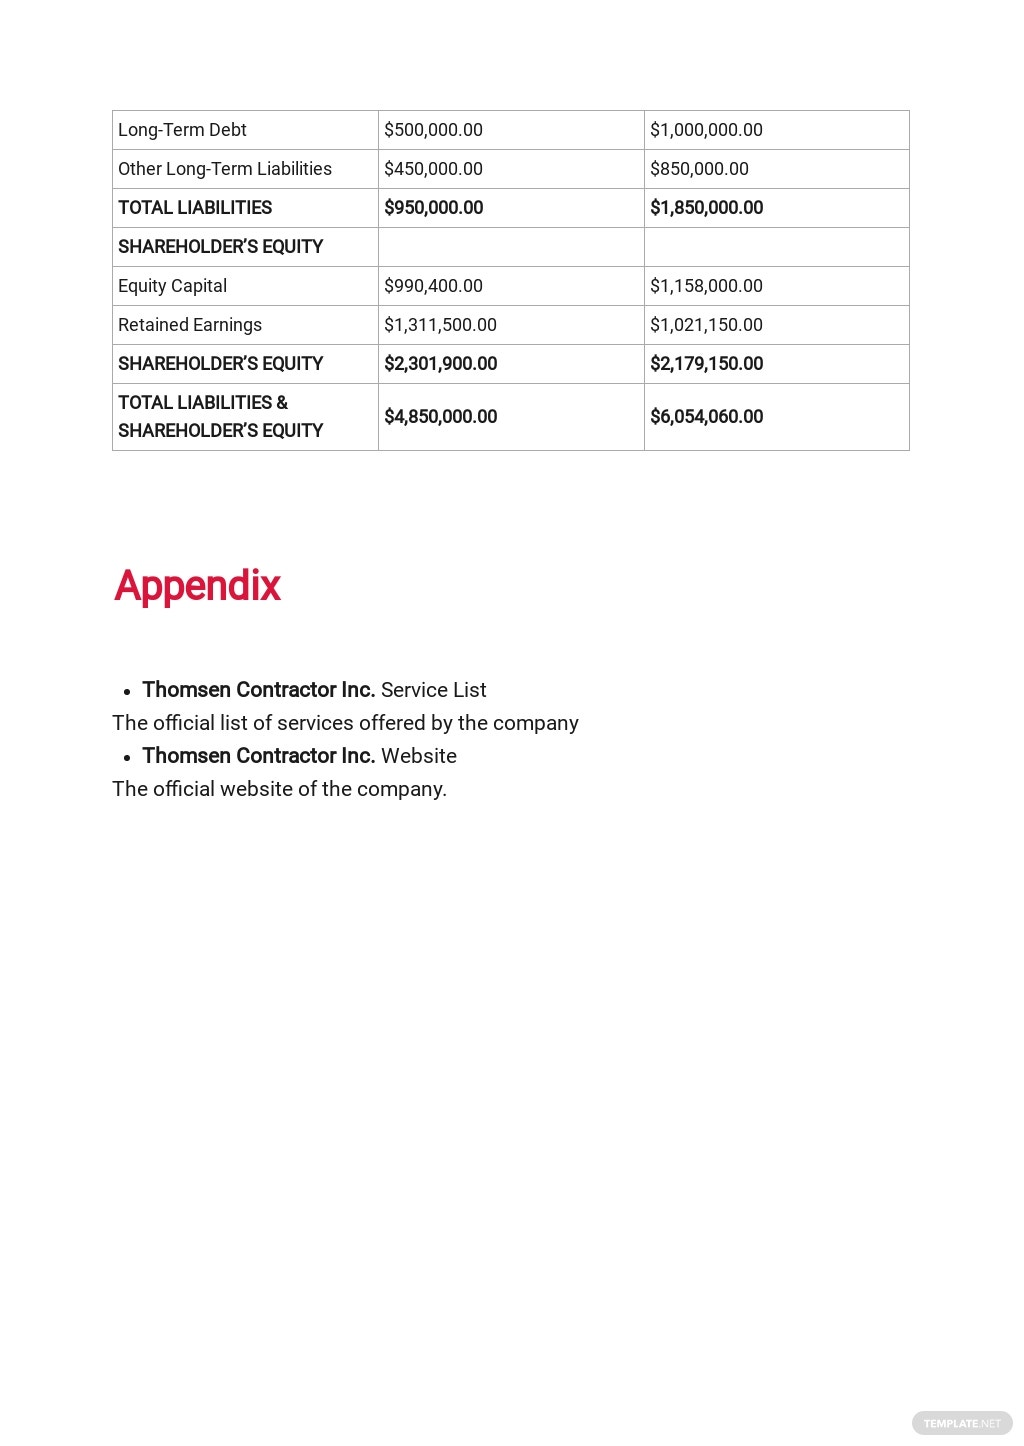 Commercial Contractor Business Plan Template 10.jpe